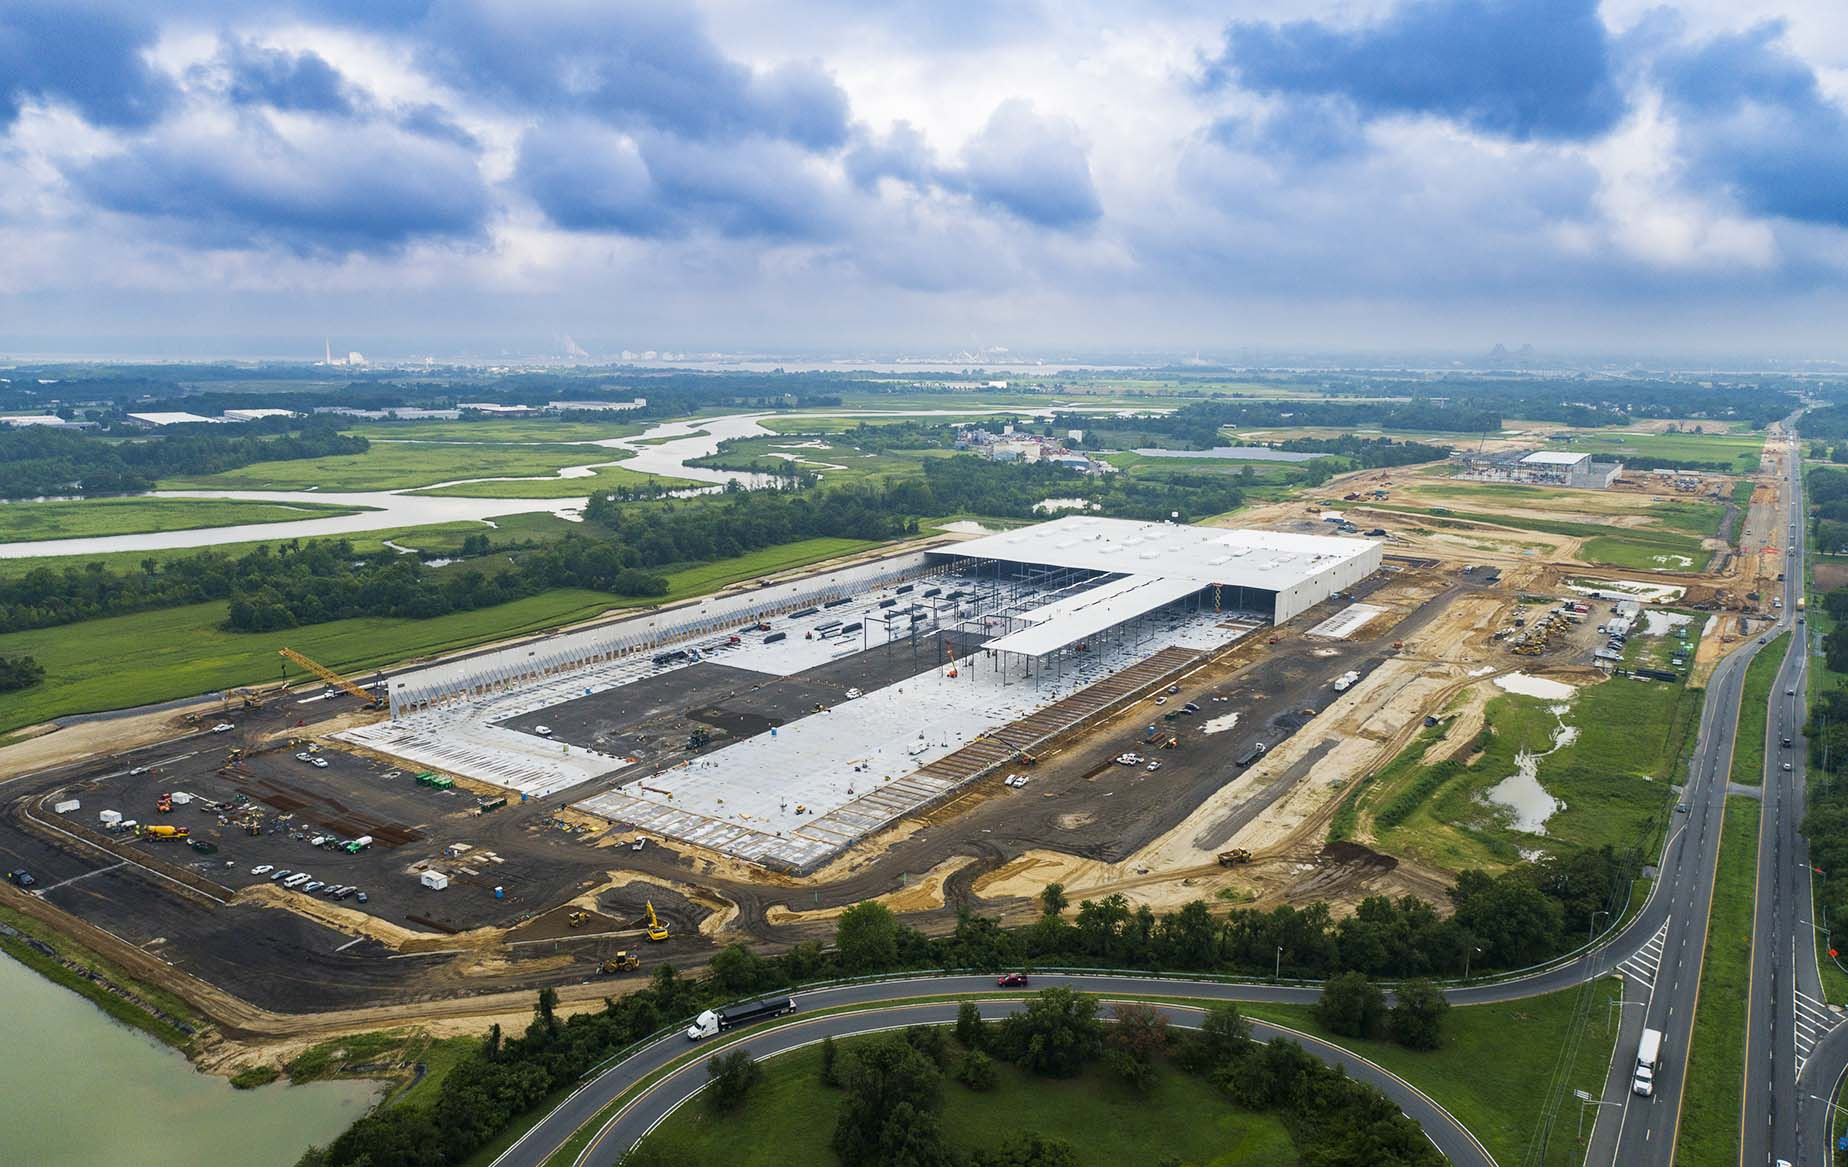 Drone Photograph of a Construction site in Logan township New Jersey